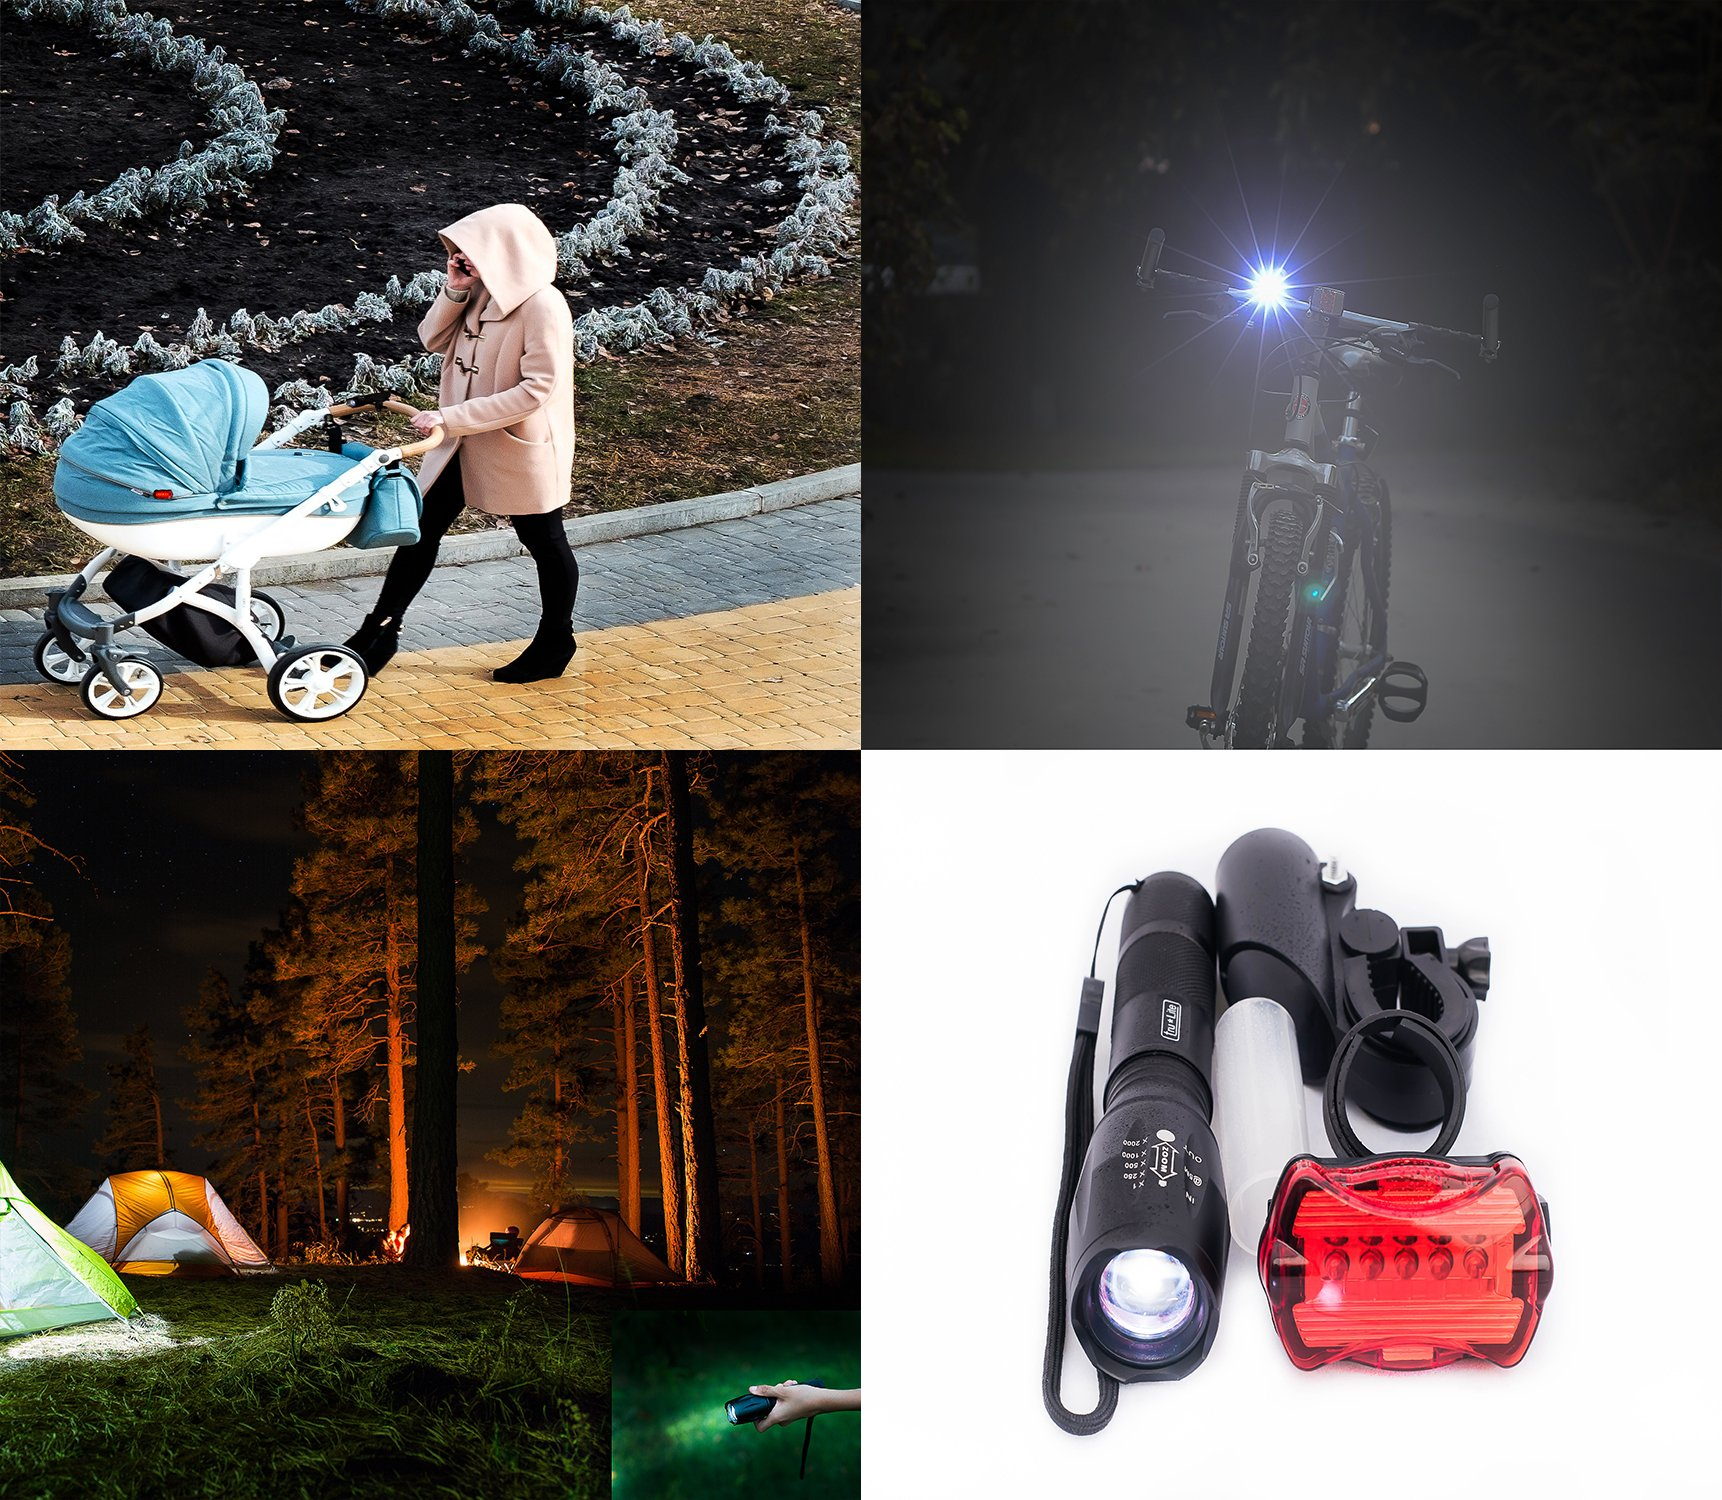 tru*Lite Bike Light Set-Super Bright 10W Removable Military Grade Tactical Flash Light-5 modes-1000+ Lumens-Zoom-5 LED Tail Light-7 modes-Water Resistant-Easy to Install-Life Time Warranty by tru*Lite (Image #6)